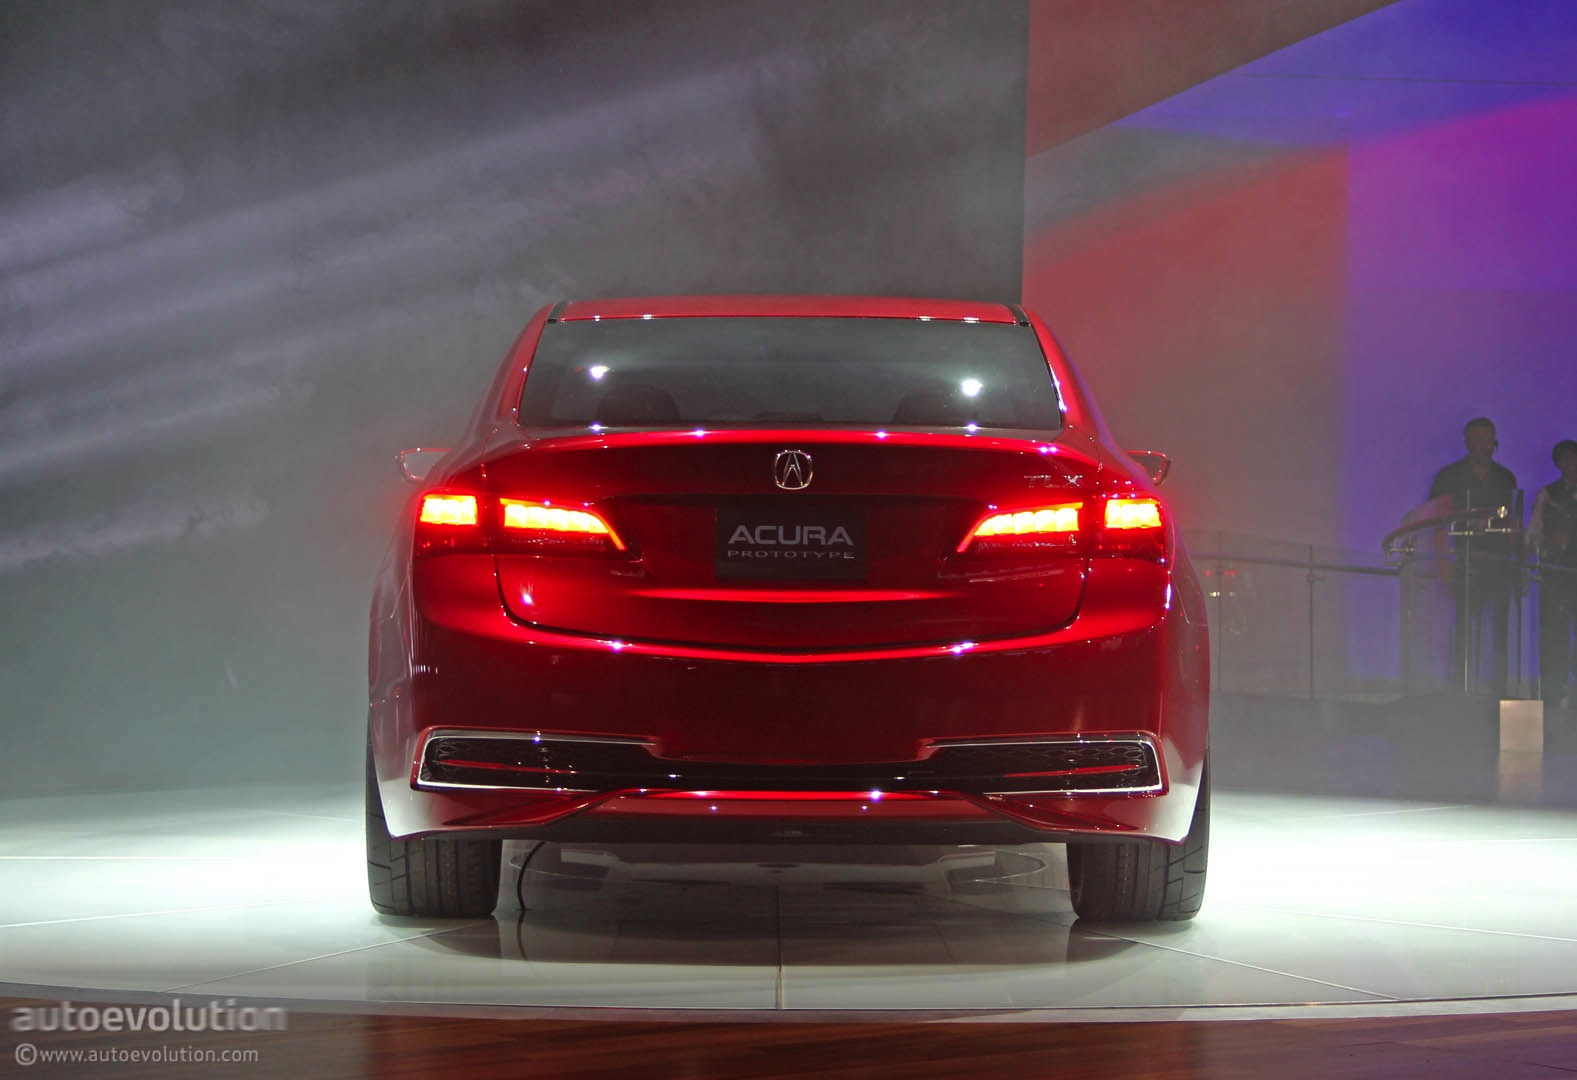 2015 Acura TLX Prototype at 2014 Detroit Auto Show